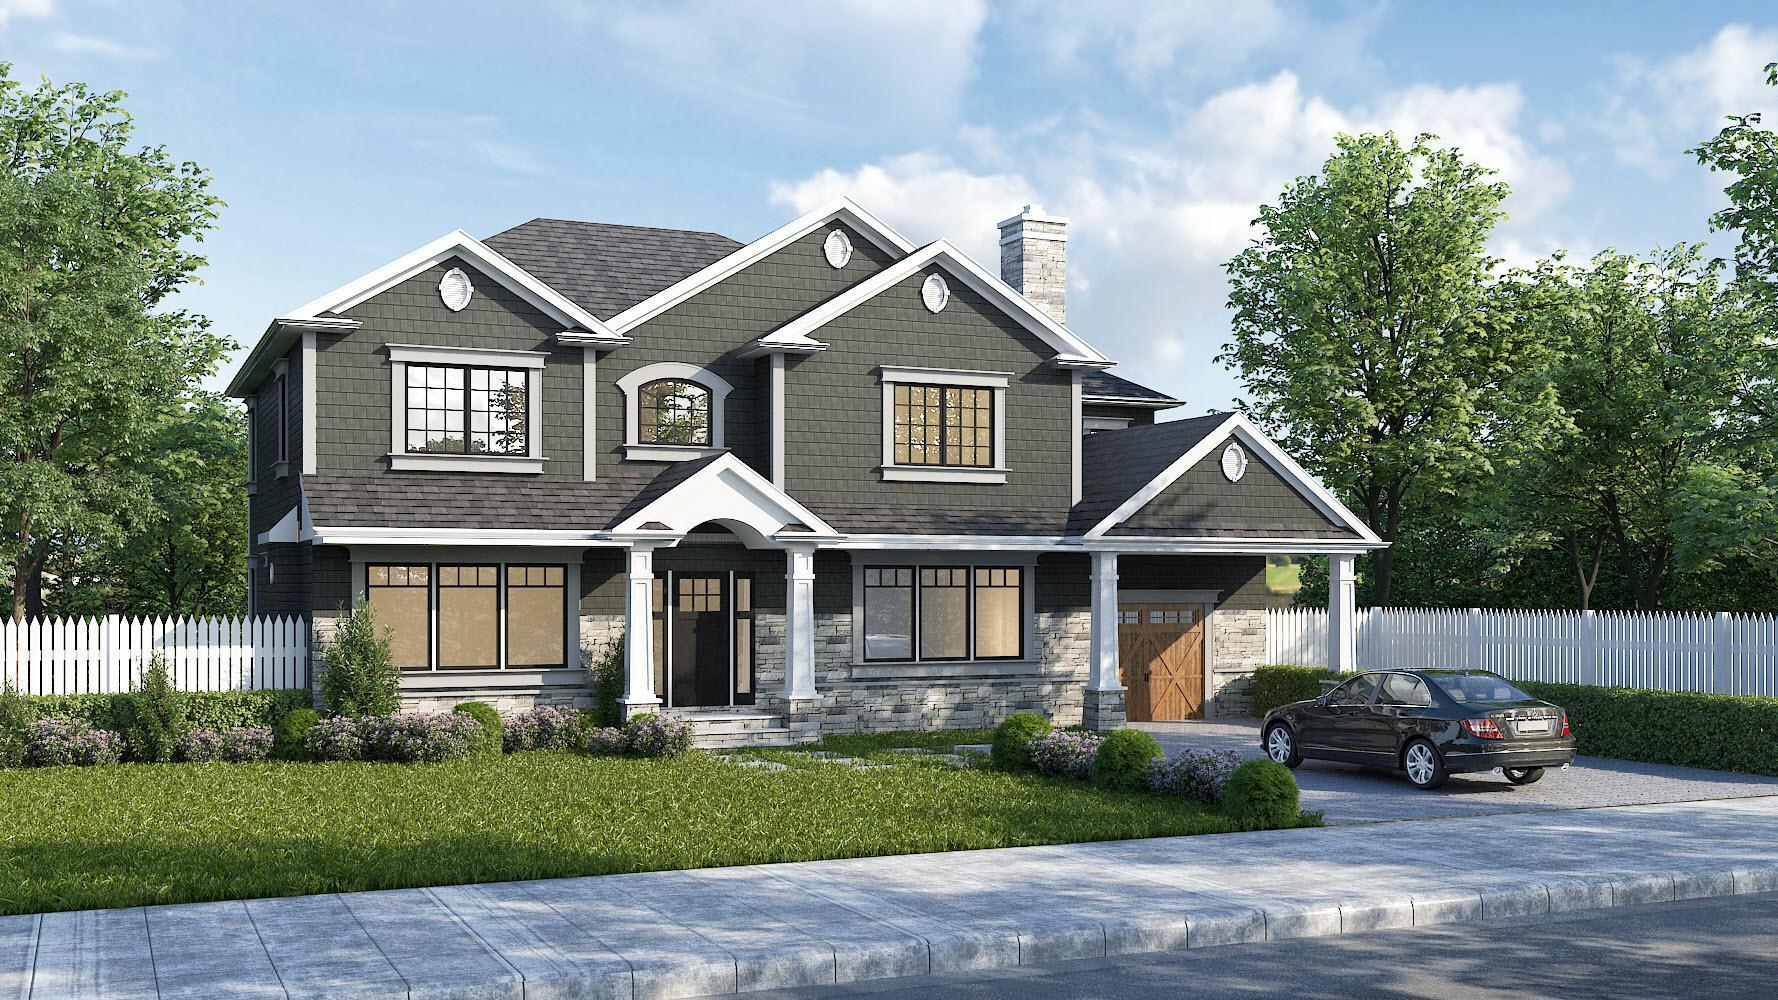 Exterior featured in the 3053-2 (Price Assumes Average Lot Cost Of $500,000)